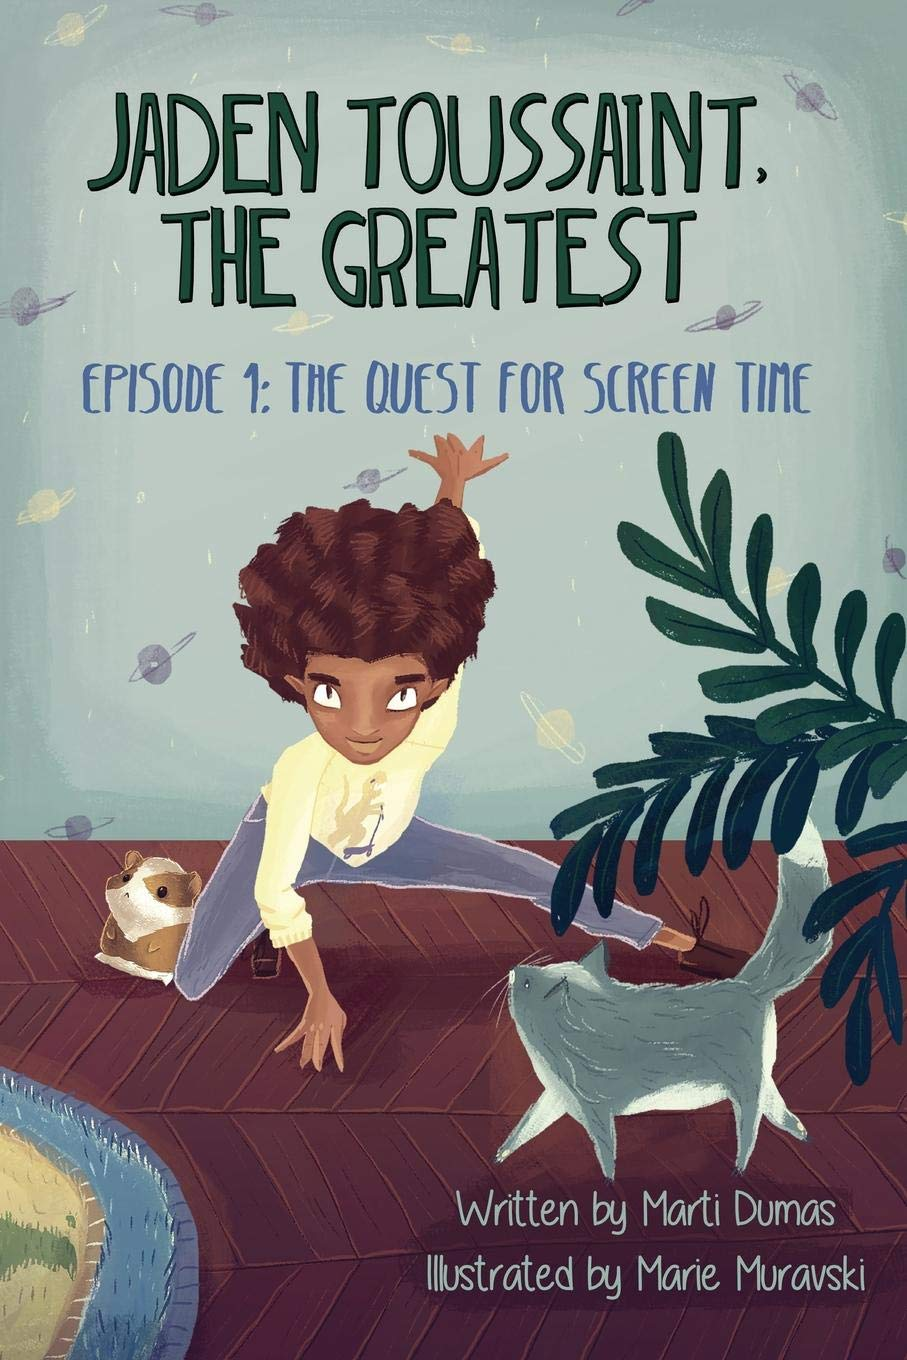 Jaden Toussaint, the Greatest Episode 1: The Quest for Screen Time